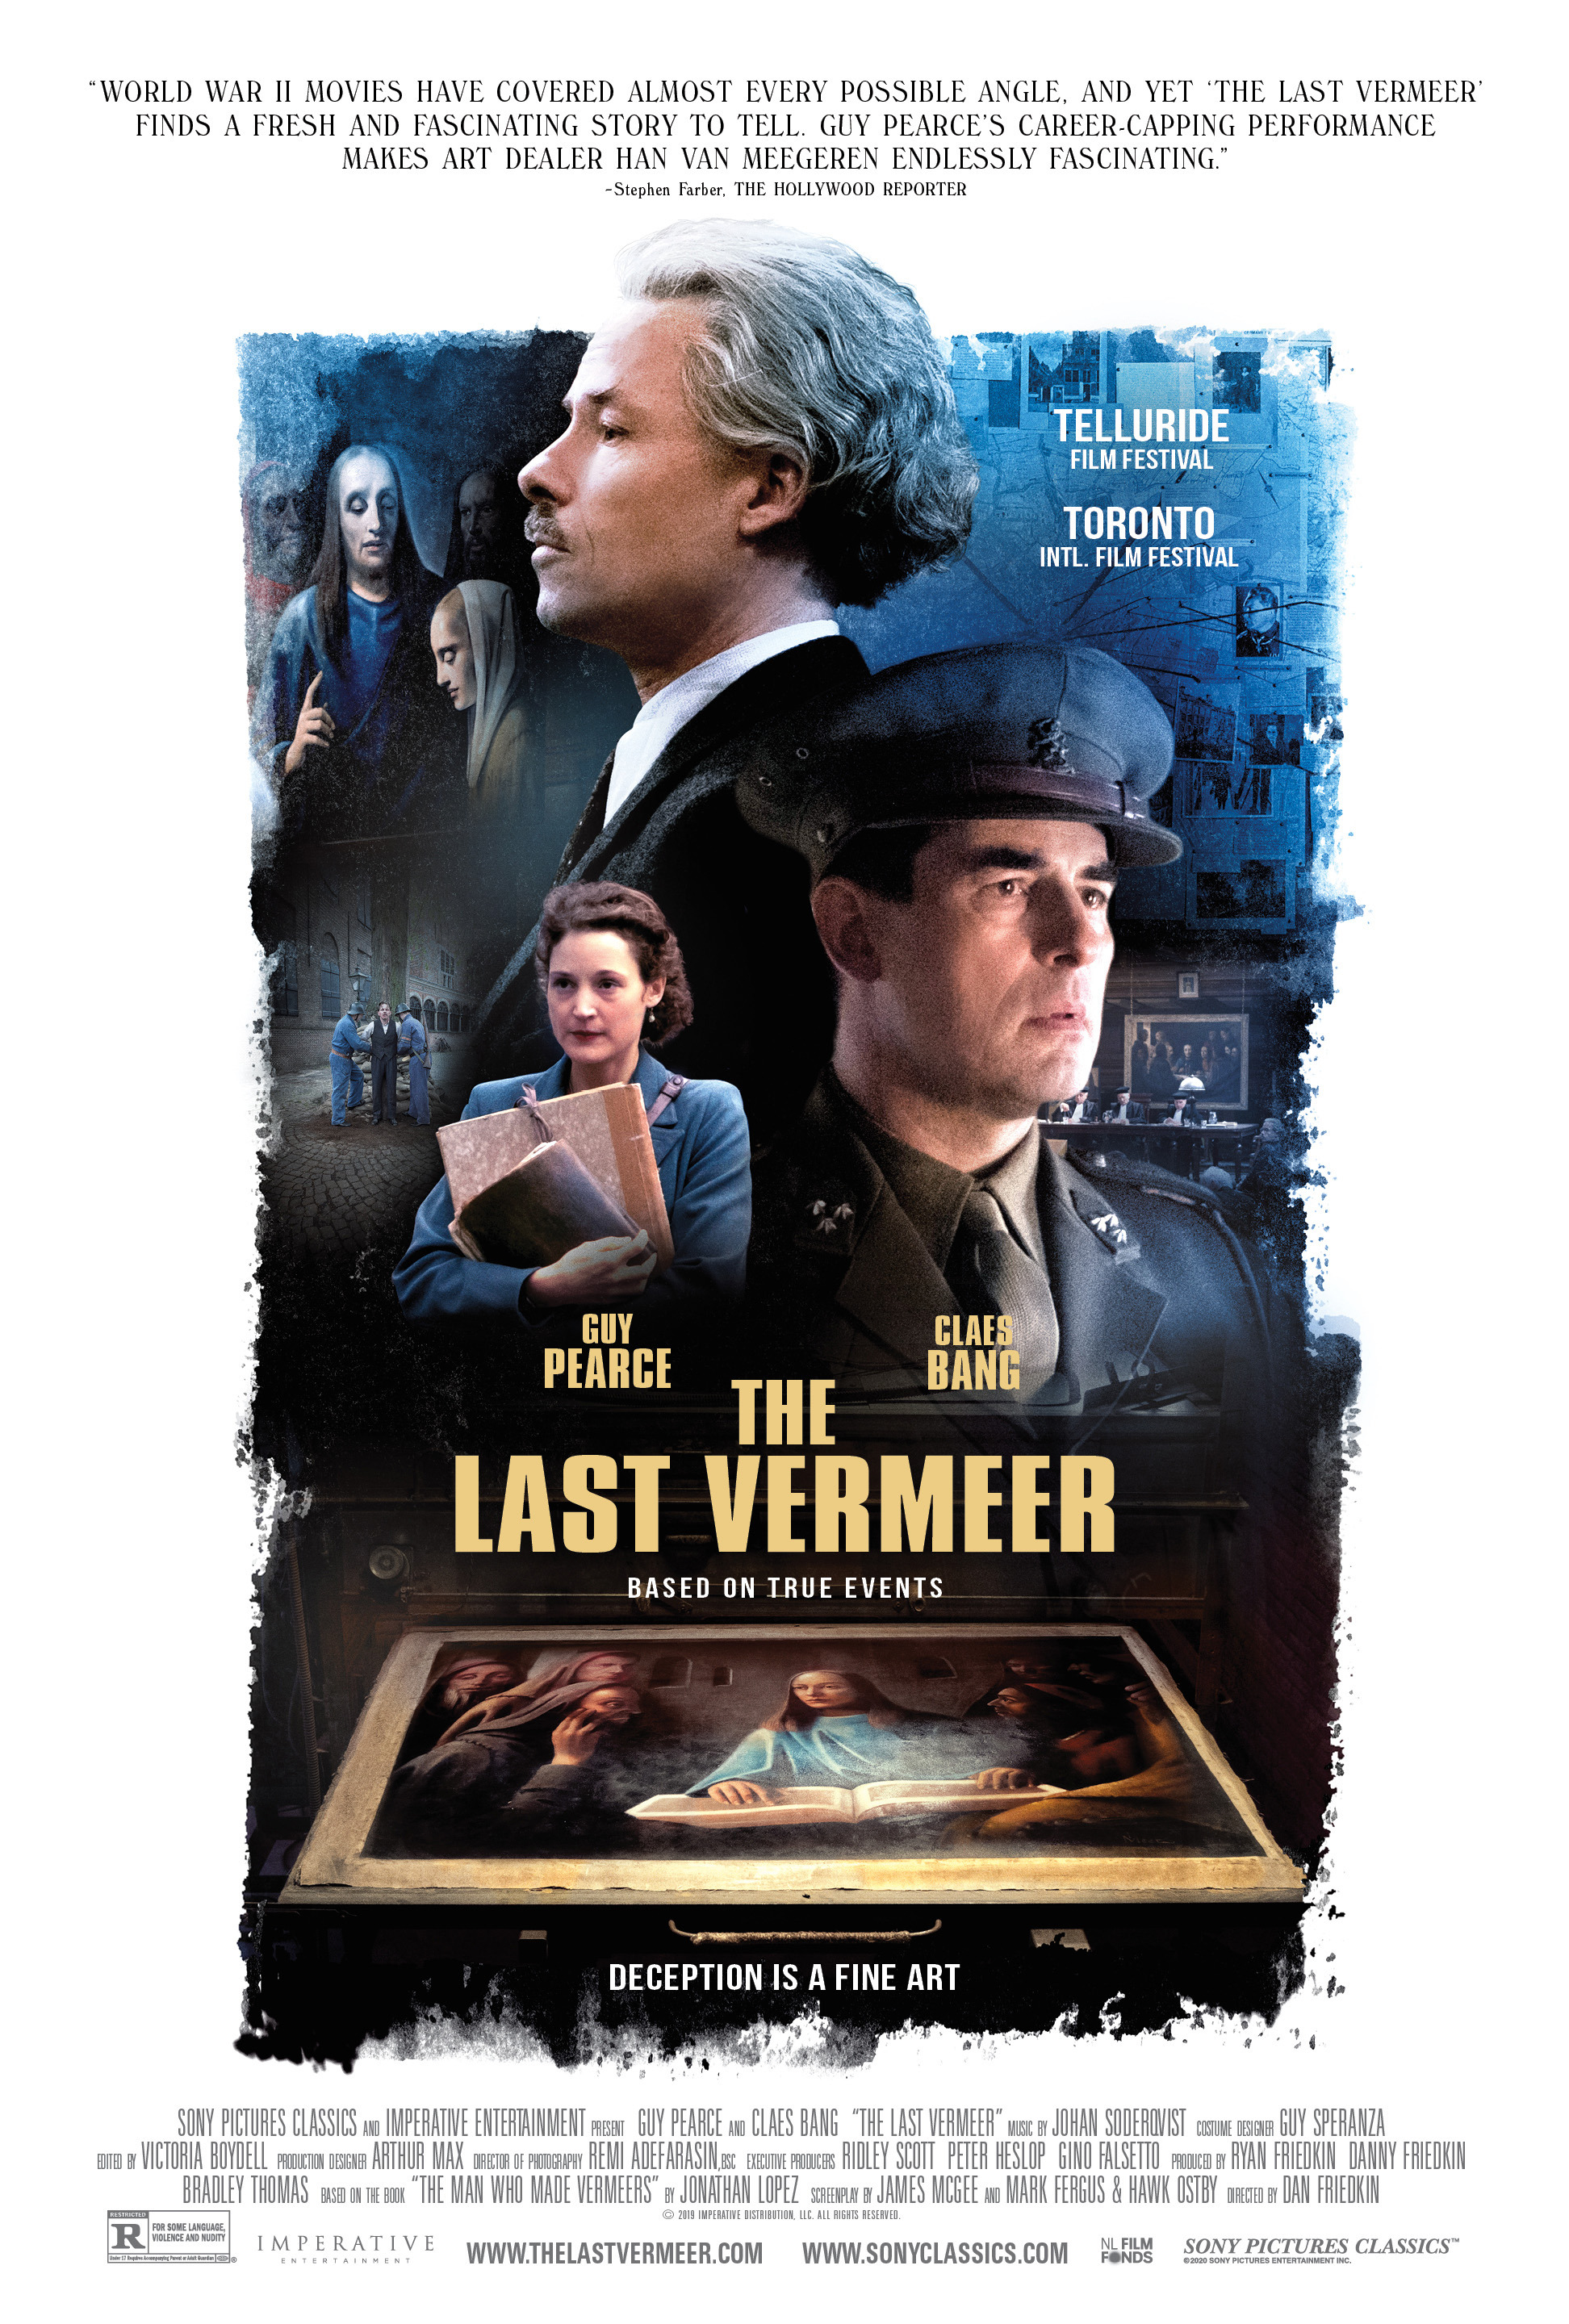 Movie poster image for THE LAST VERMEER